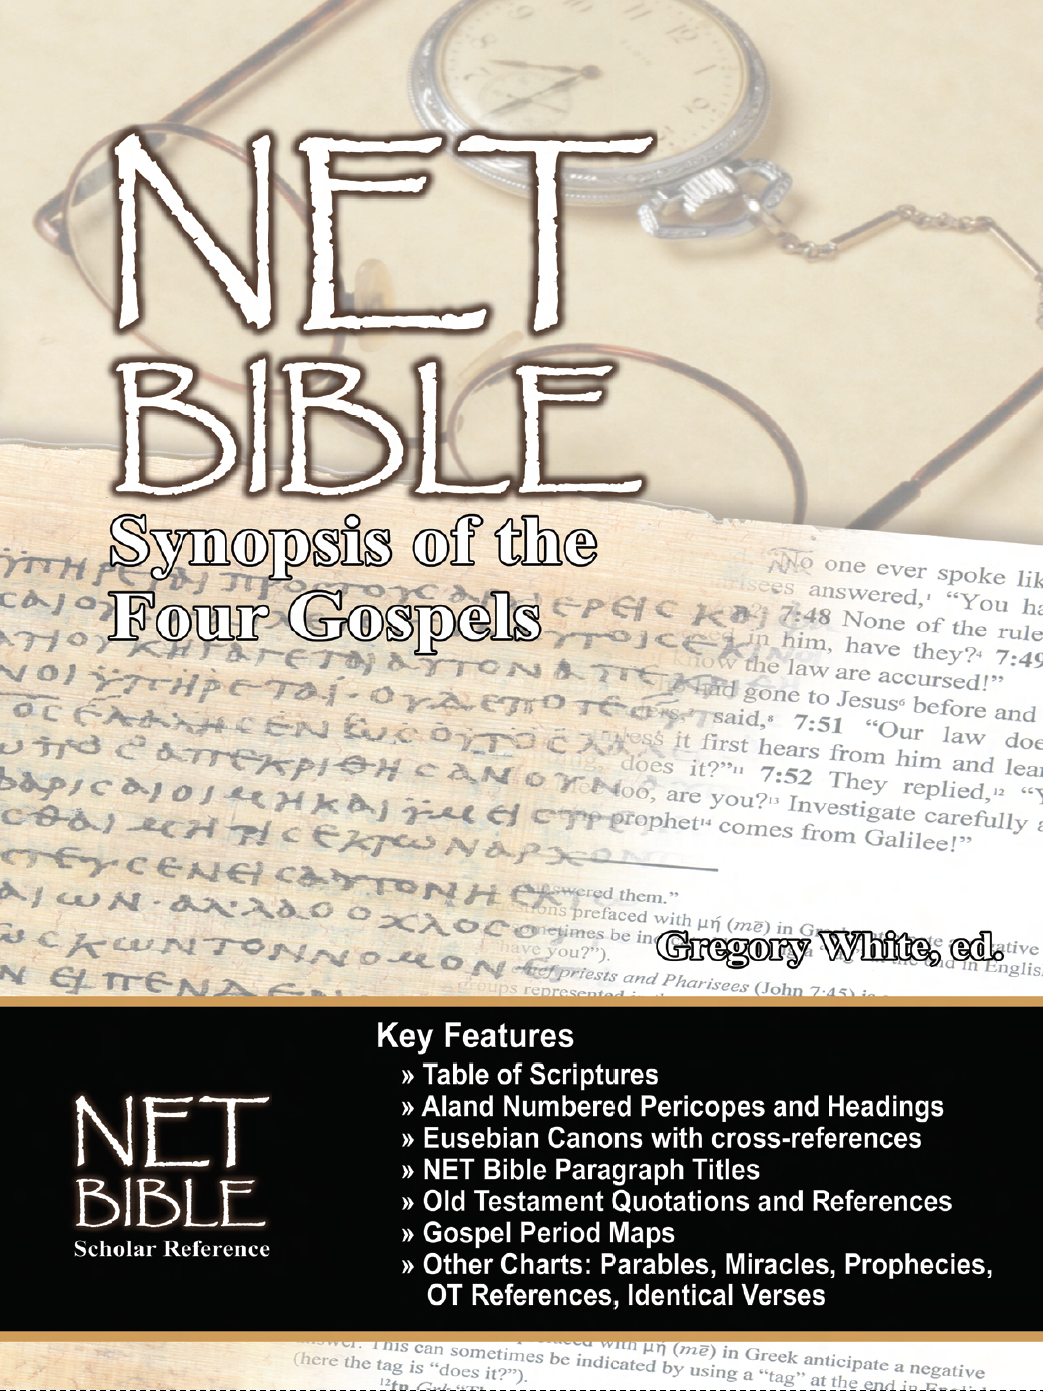 Net bible synopsis of the four gospels bible to view the full version of the synopsis of the four gospels by gregory white click here pdf ccuart Choice Image